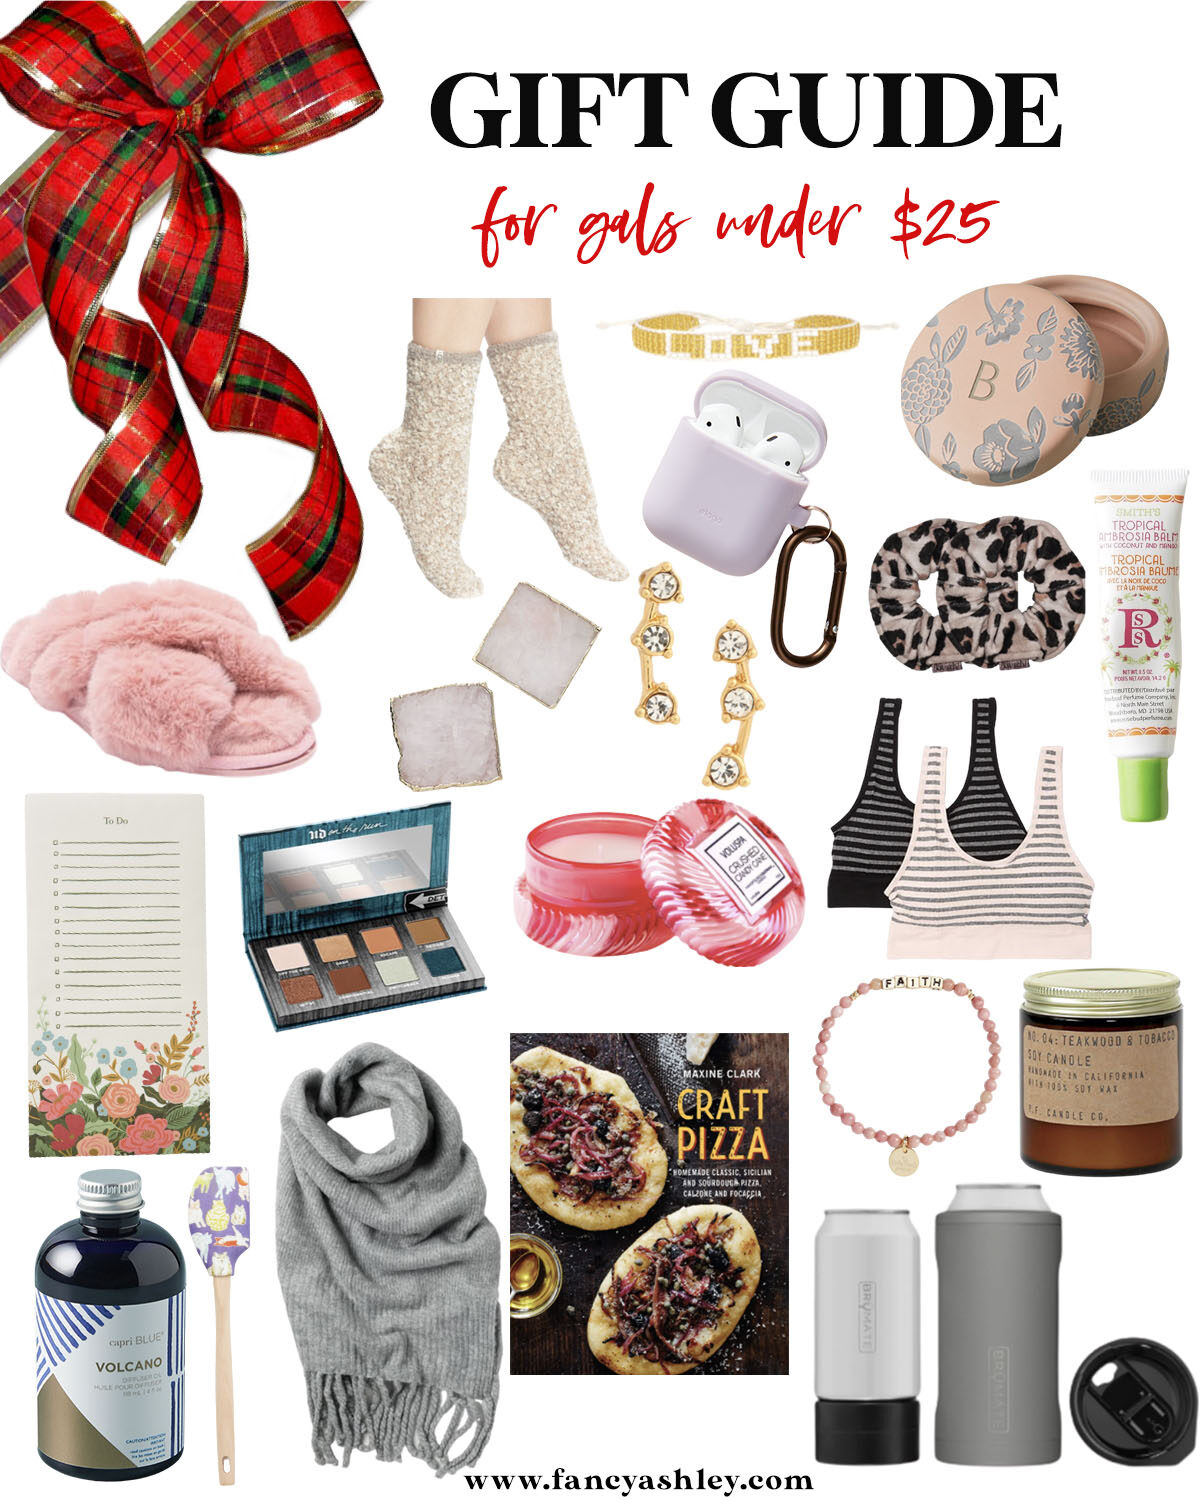 Gifts Under $25 by popular Houston life and style blog, Fancy Ashley: collage image ofUGG SOCKS, LOVE BRACELET, MONORAM TRINKET DISH, SLIPPERS, AGATE COASTERS  STUD EARRINGS, AIRPODS CASE, TOWEL SCRUNCHIES, SMITH'S ROSEBALM SALVE,  RIFFLE PAPER TO DO LIST, URBAN DECAY MINI EYESHADOW PALETTE, VOLUSPA CANDLE  COTTON BRA 2-SET, CAPRI BLUE VOLCANO DIFFUSER, SPATULA, FREE PEOPLE SCARF, CRAFT PIZZA BOOK, FAITH BRACELET, and TEAKWOOD SOY CANDLE